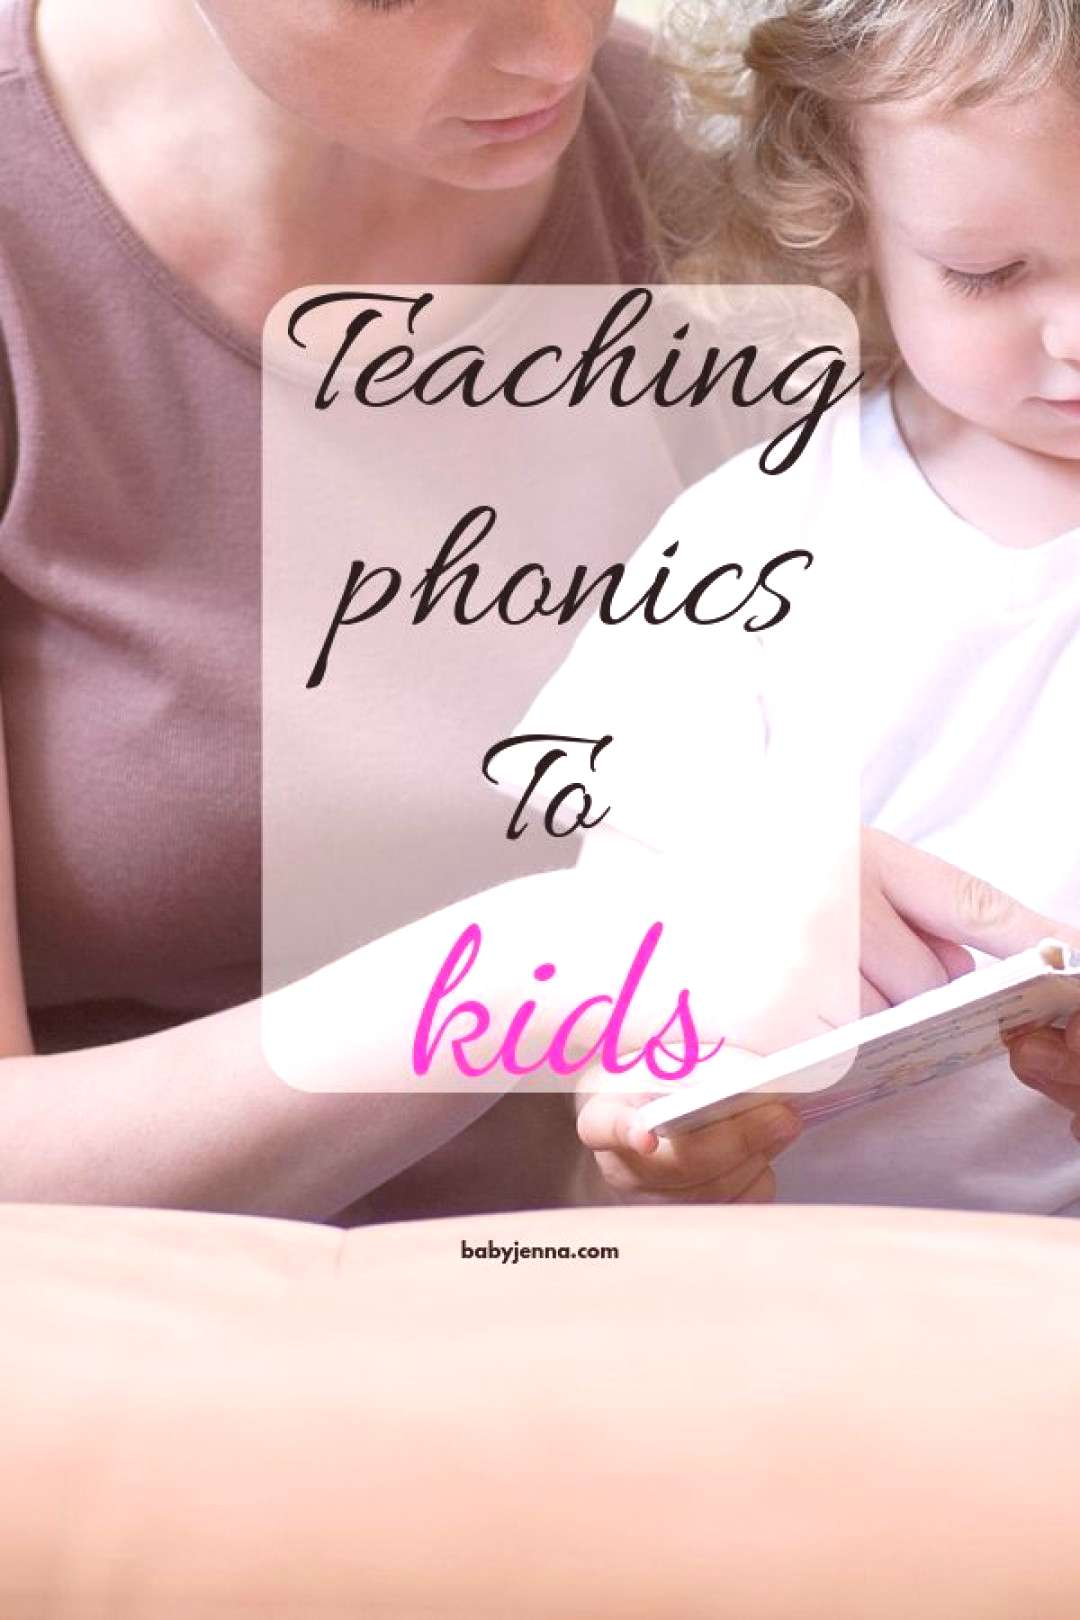 Phonics For Toddlers First Grade Phonics for toddlers phonics für kleinkinder phonétique pour